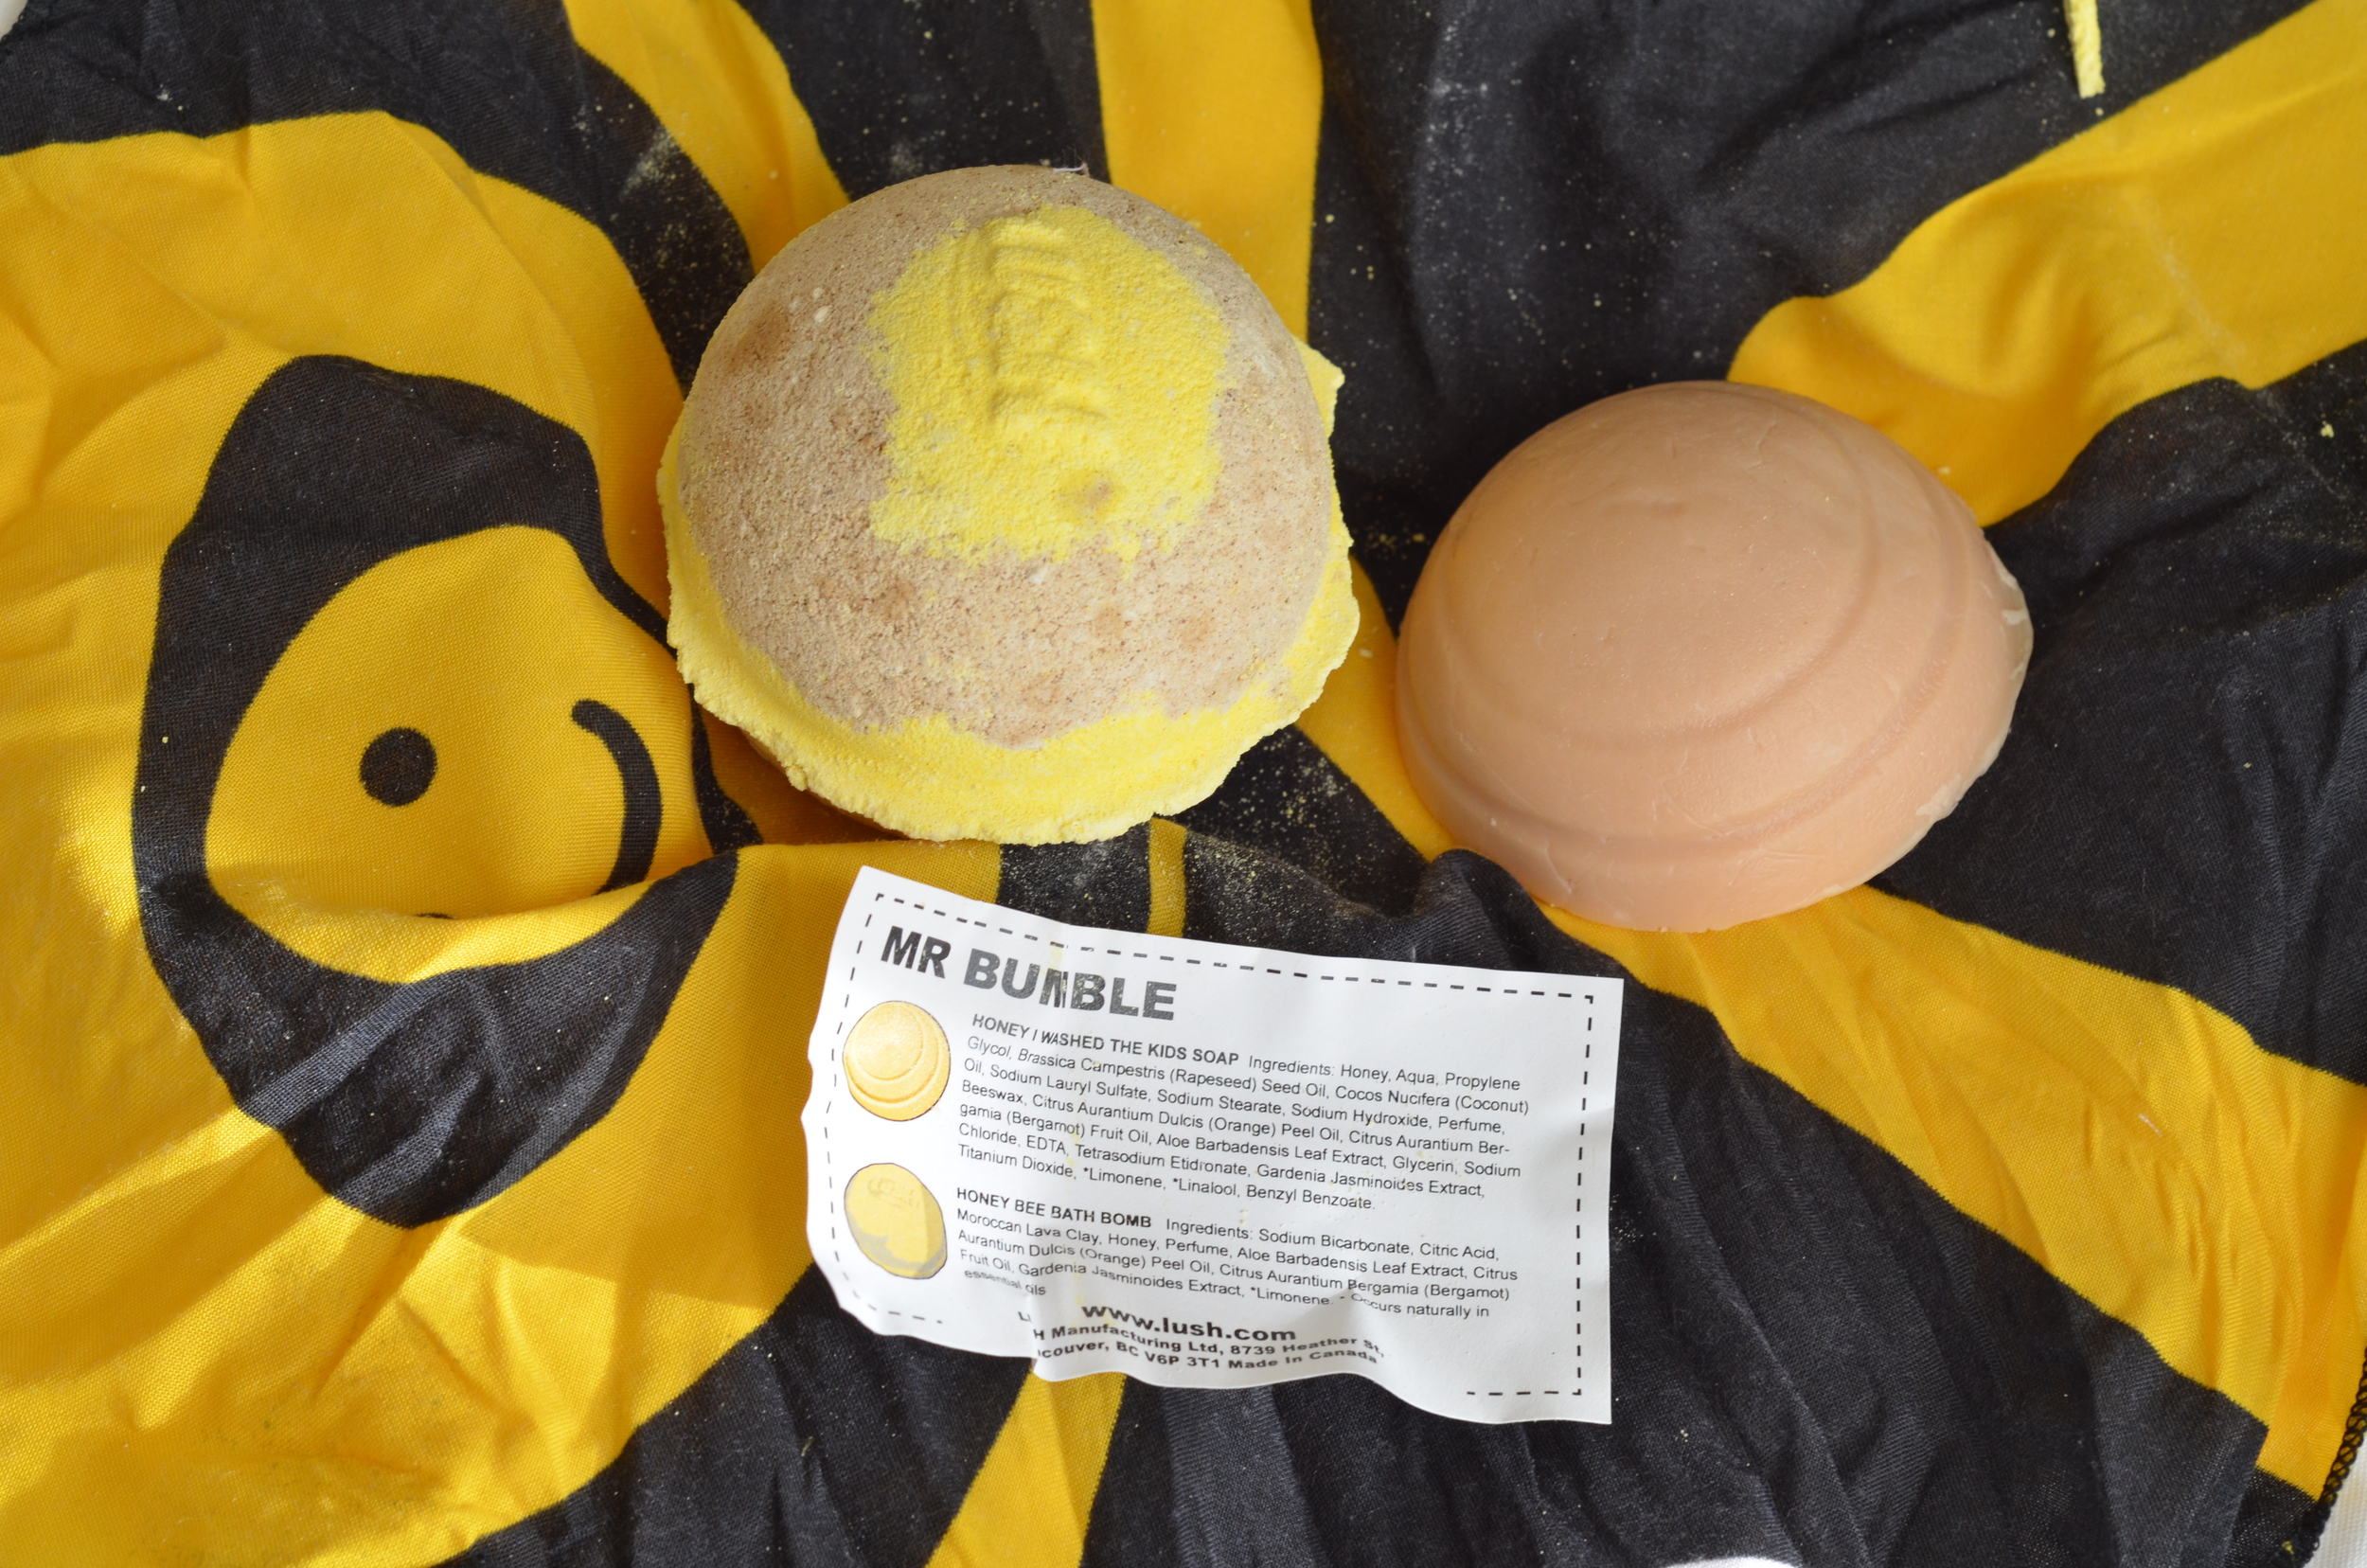 lush honey bee bath bomb review, lush honey i washed the kids soap review